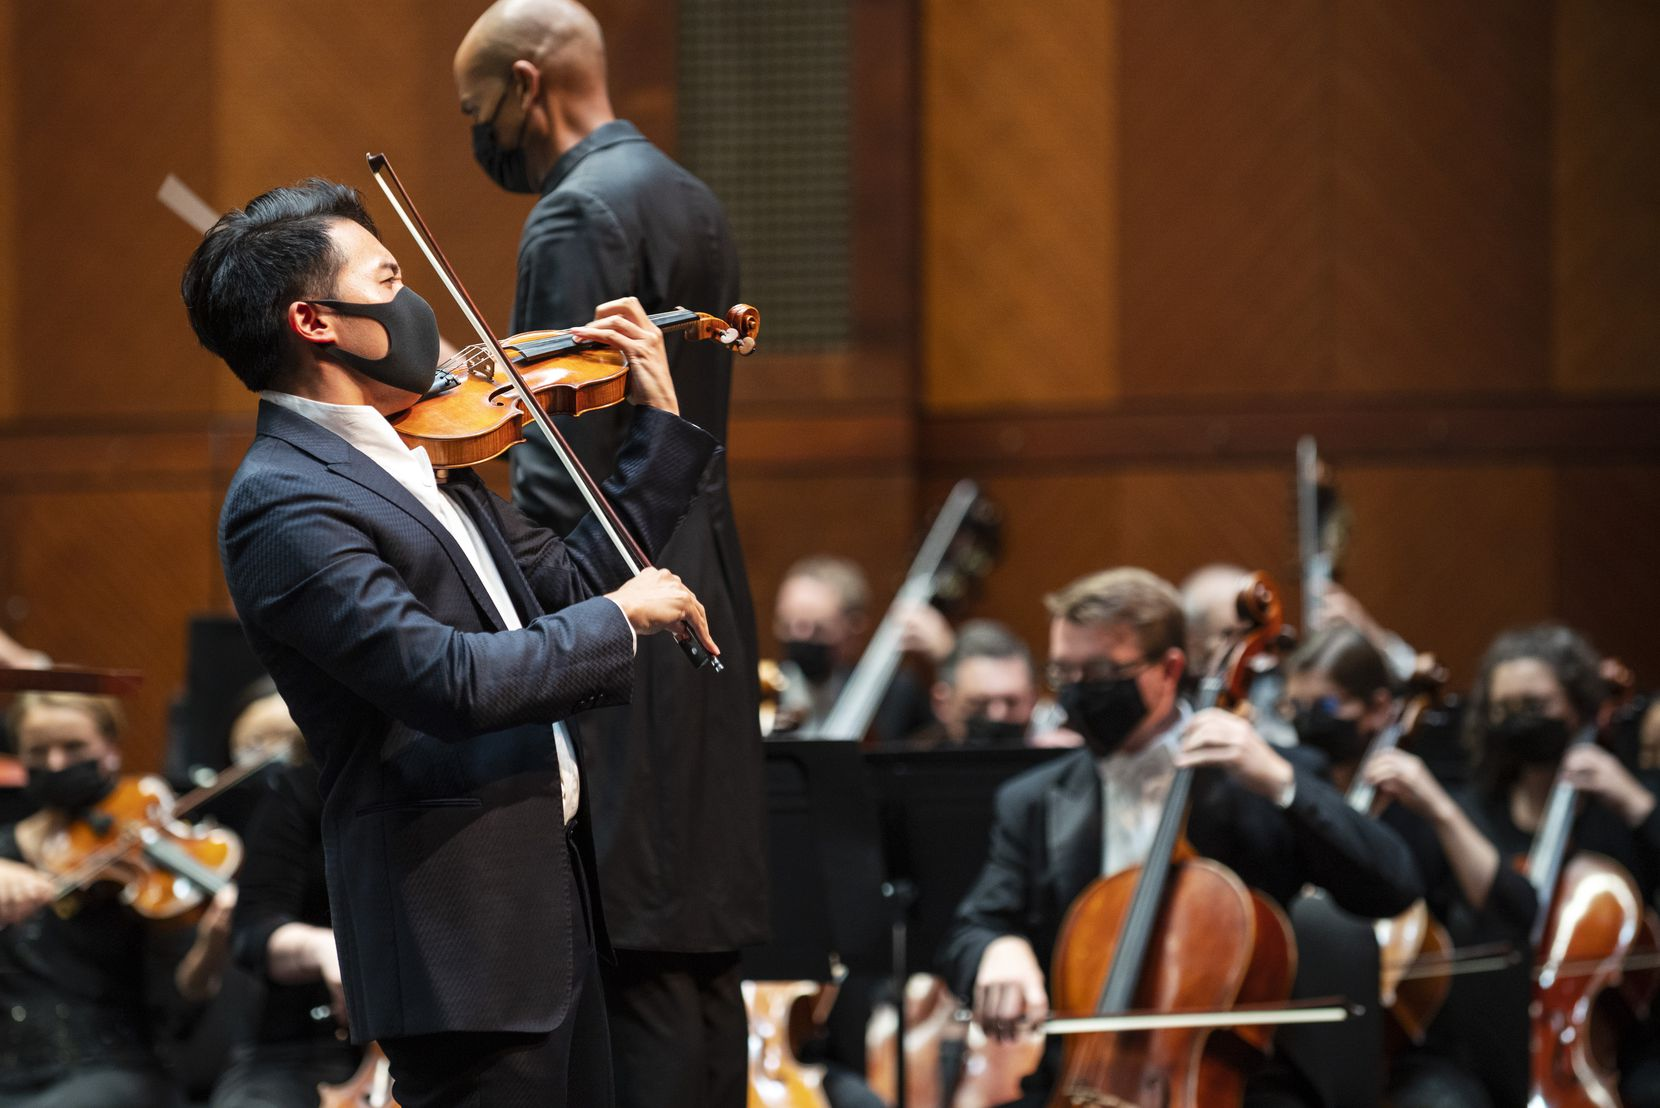 Violinist Ray Chen performs Sibelius' Violin Concerto with the Fort Worth Symphony Orchestra on Sept. 17 at Bass Performance Hall in downtown Fort Worth.